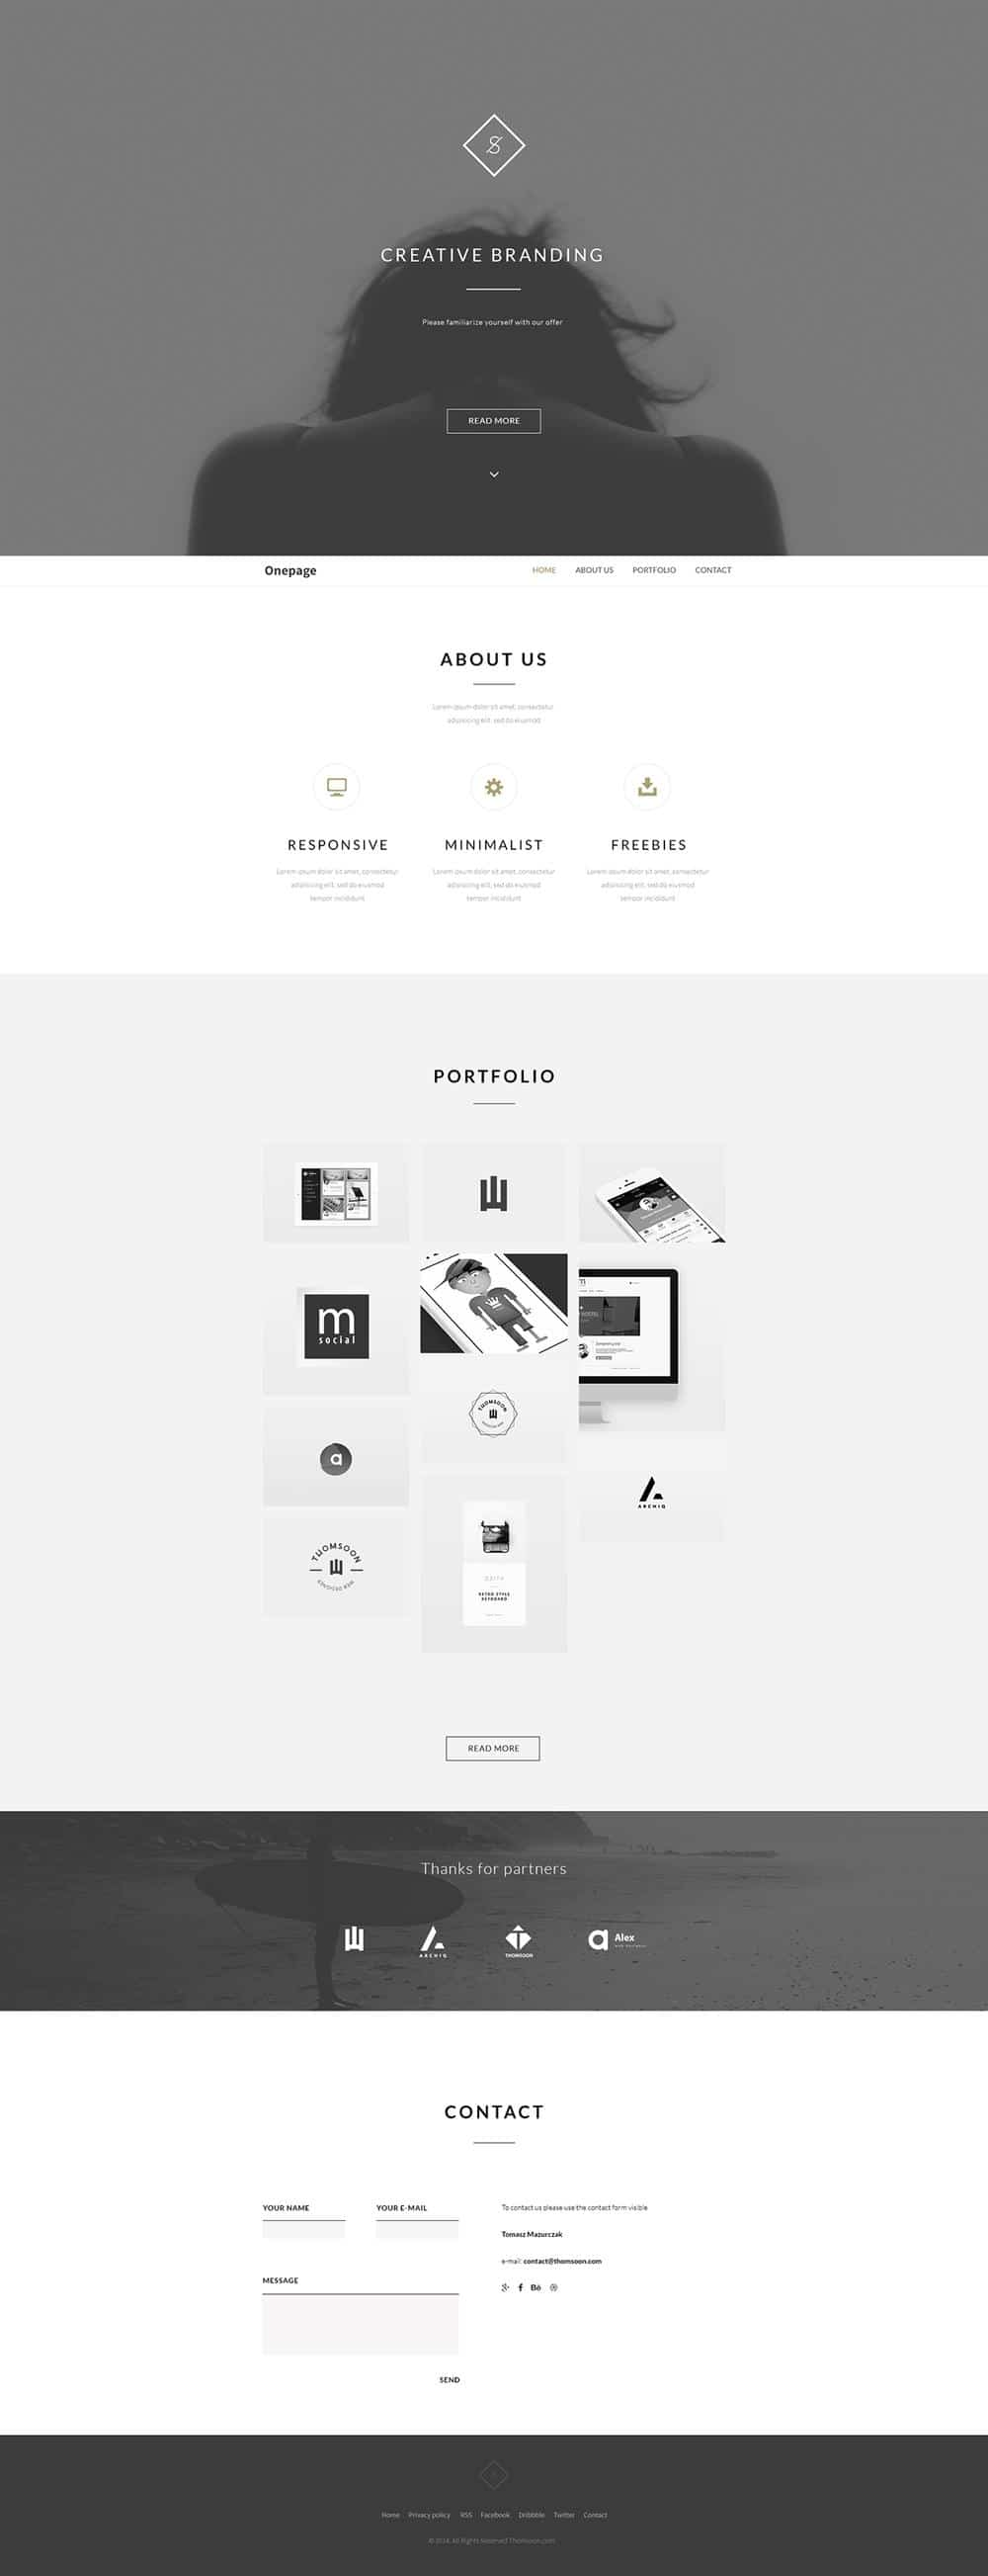 White Space in Web Design - Does it have to be white?